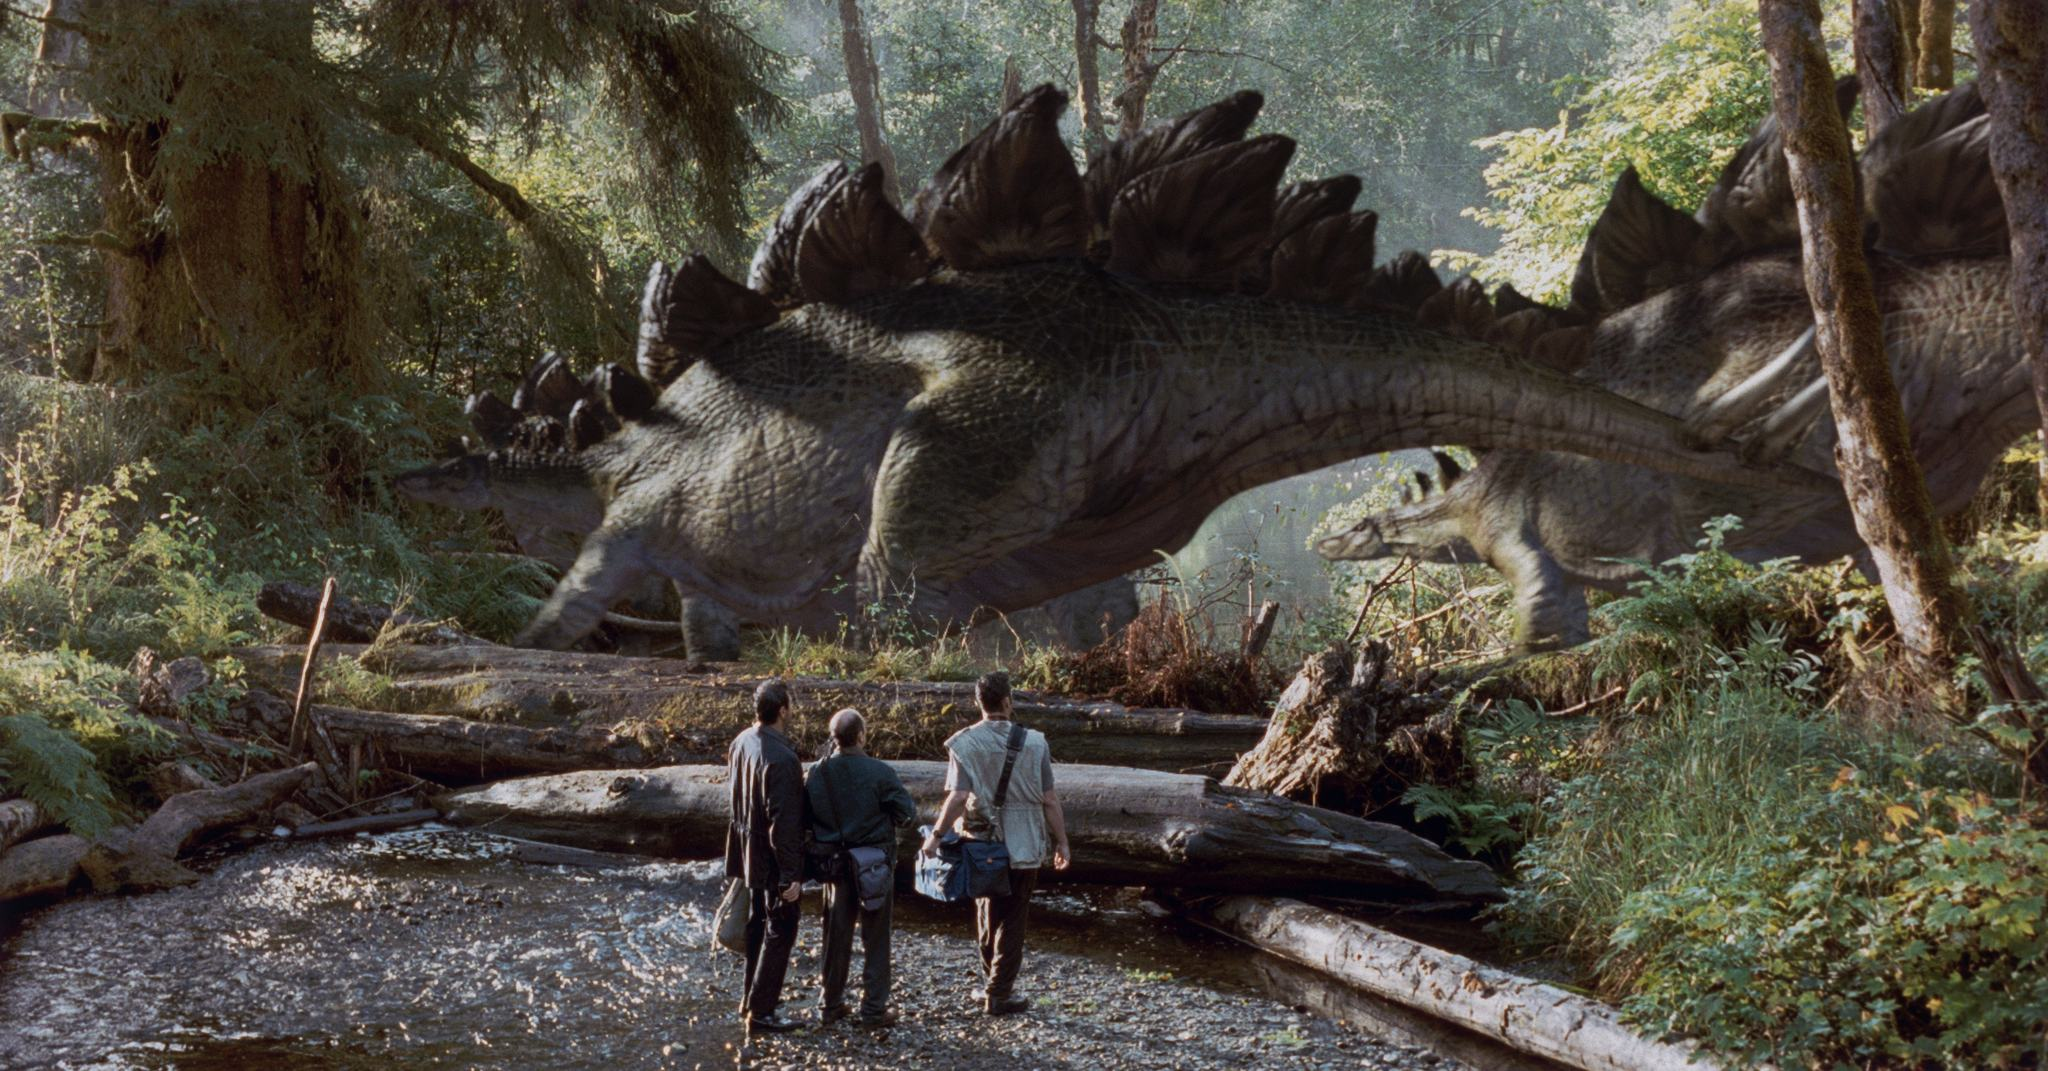 Composite from Jurassic Park: The Lost World.